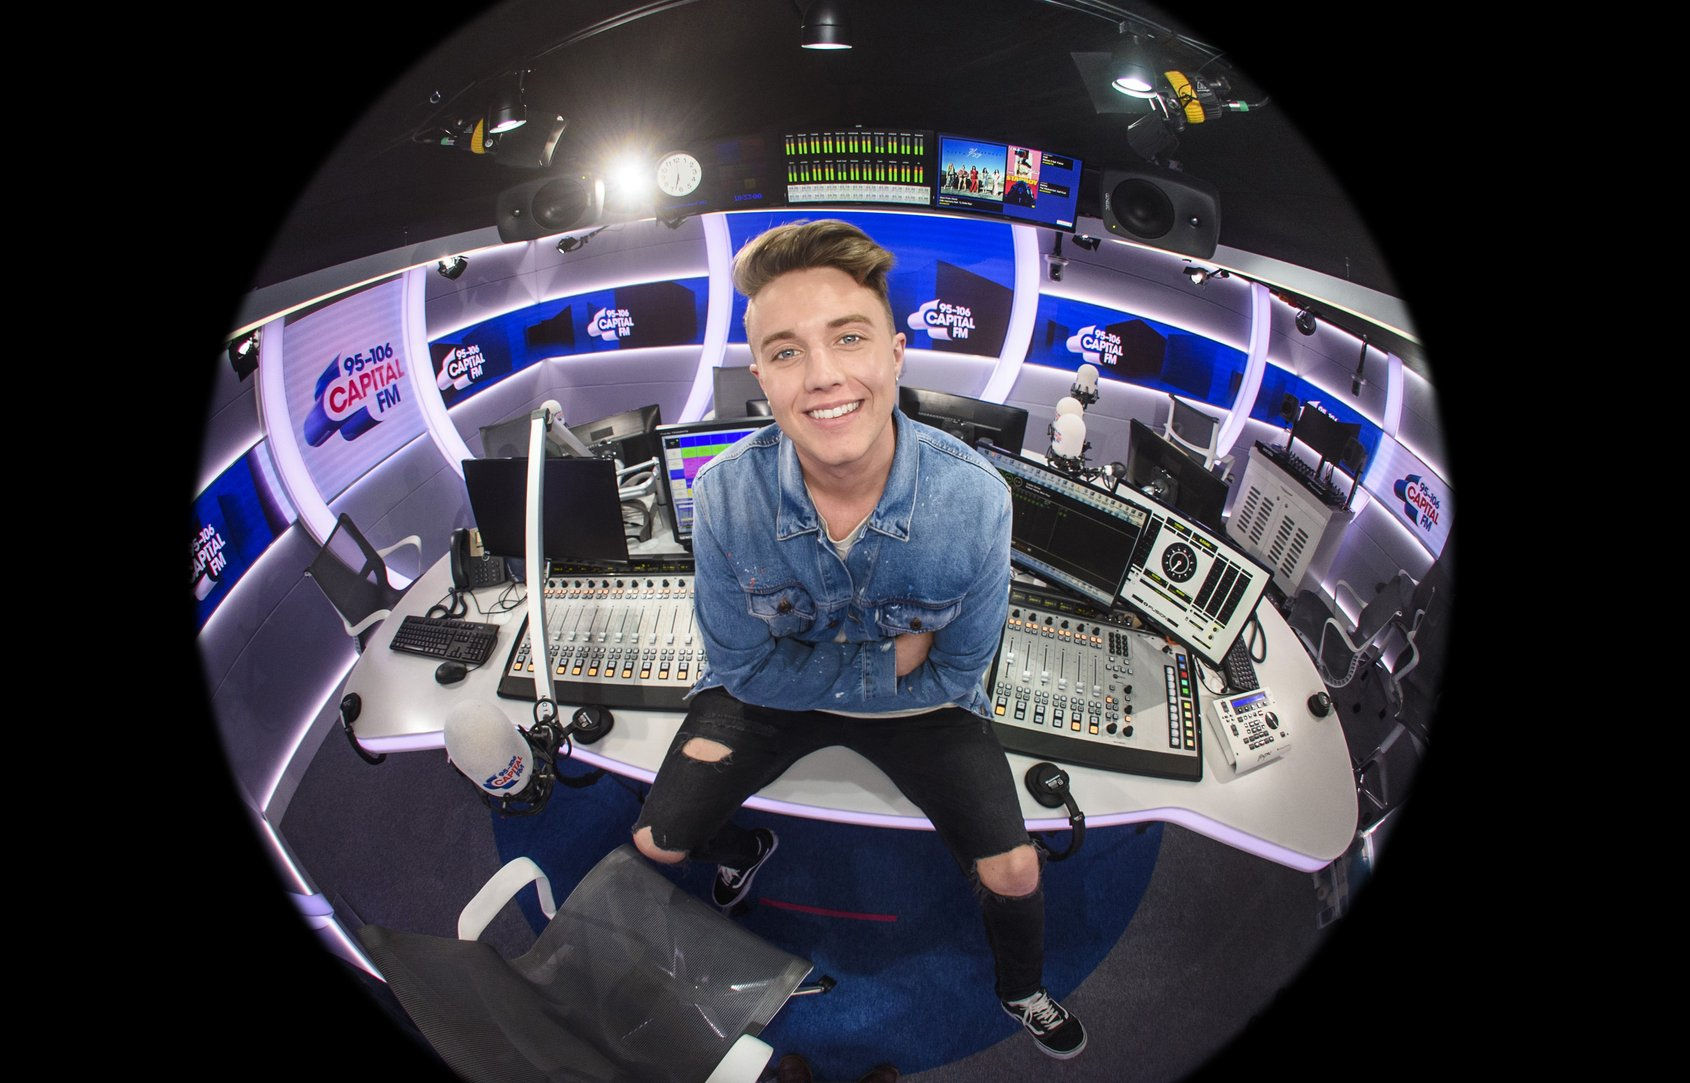 Capital London Breakfast with Roman Kemp